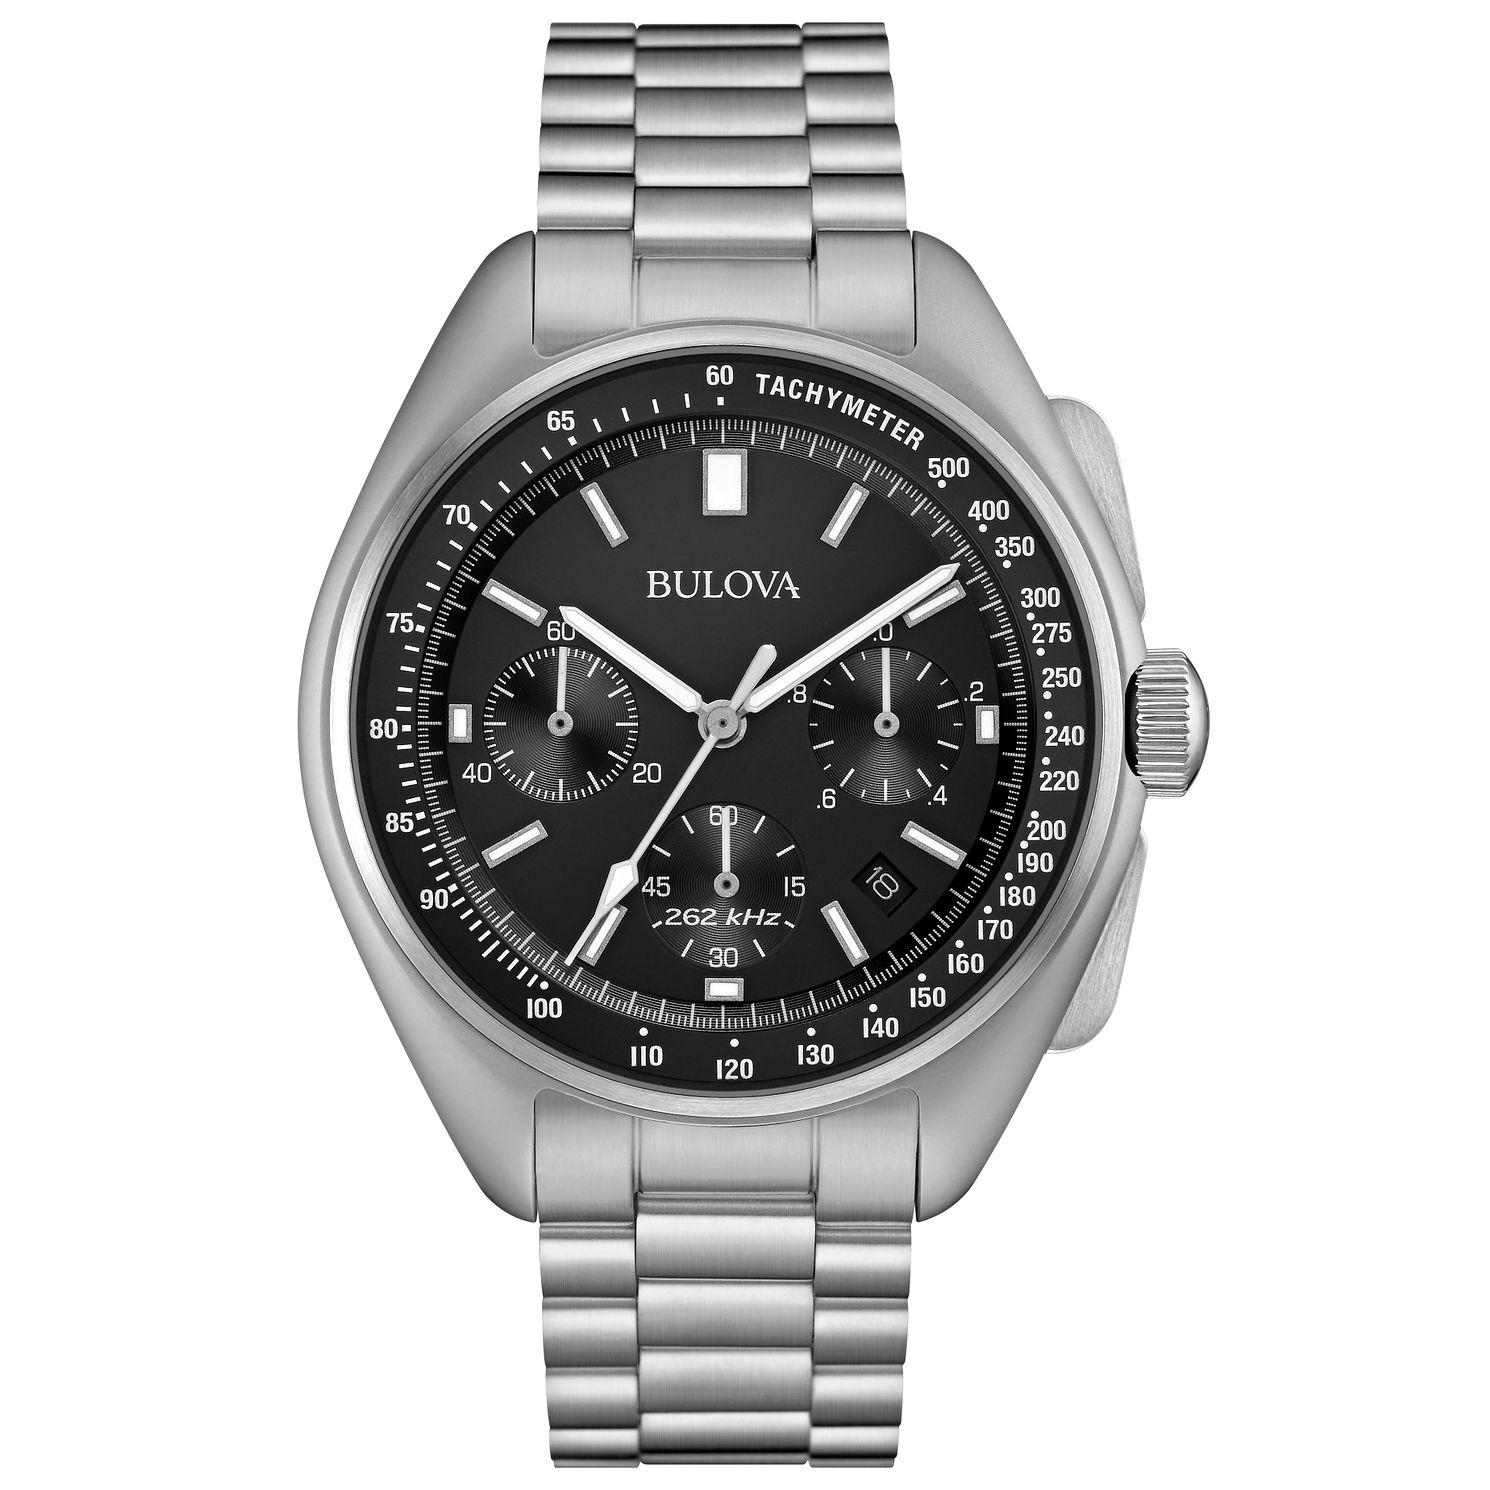 Bulova Lunar Pilot Chronograph Men's Stainless Steel Watch - Product number 5242088